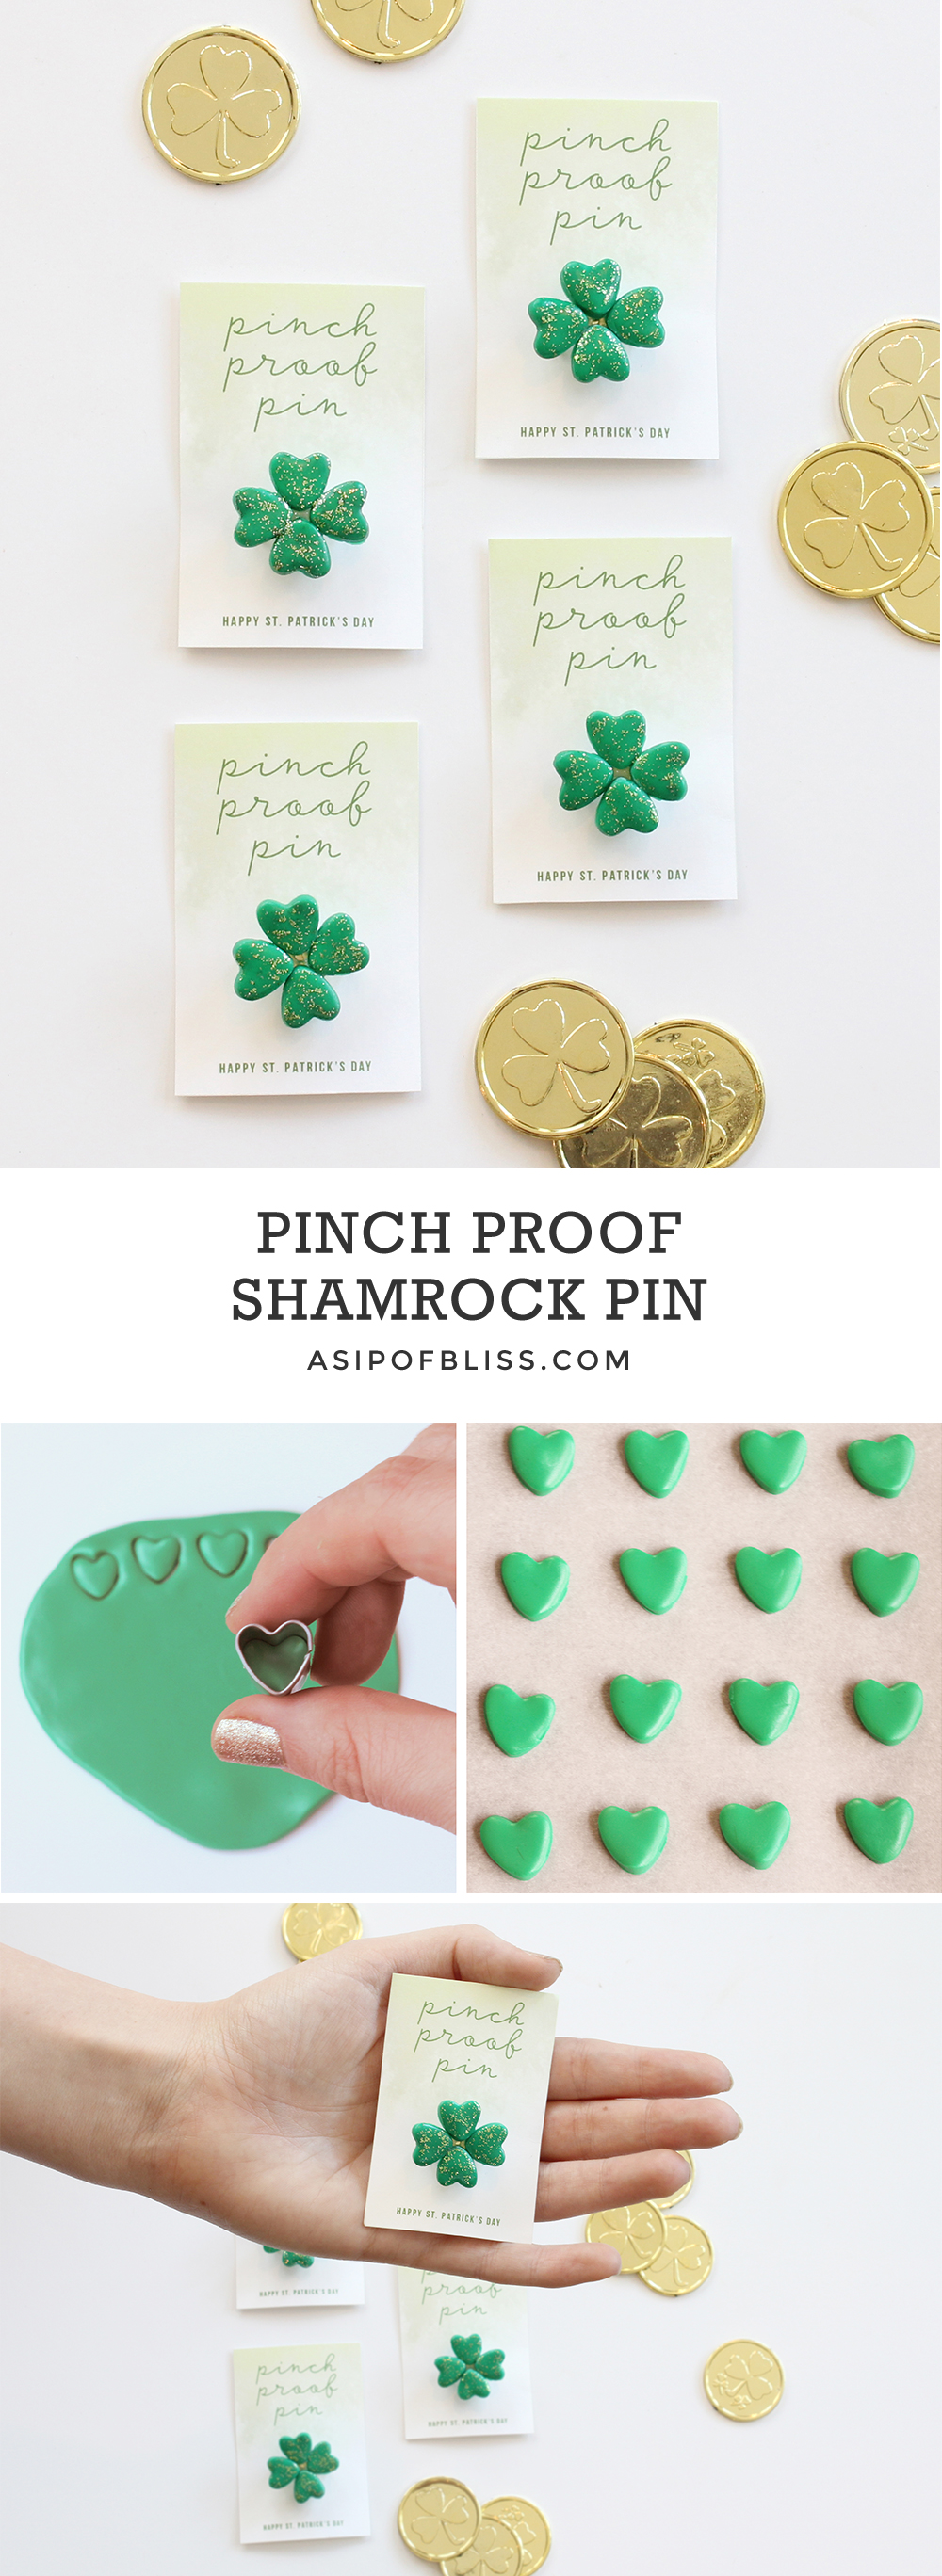 Pinch Proof Shamrock Pin | A Sip of Bliss